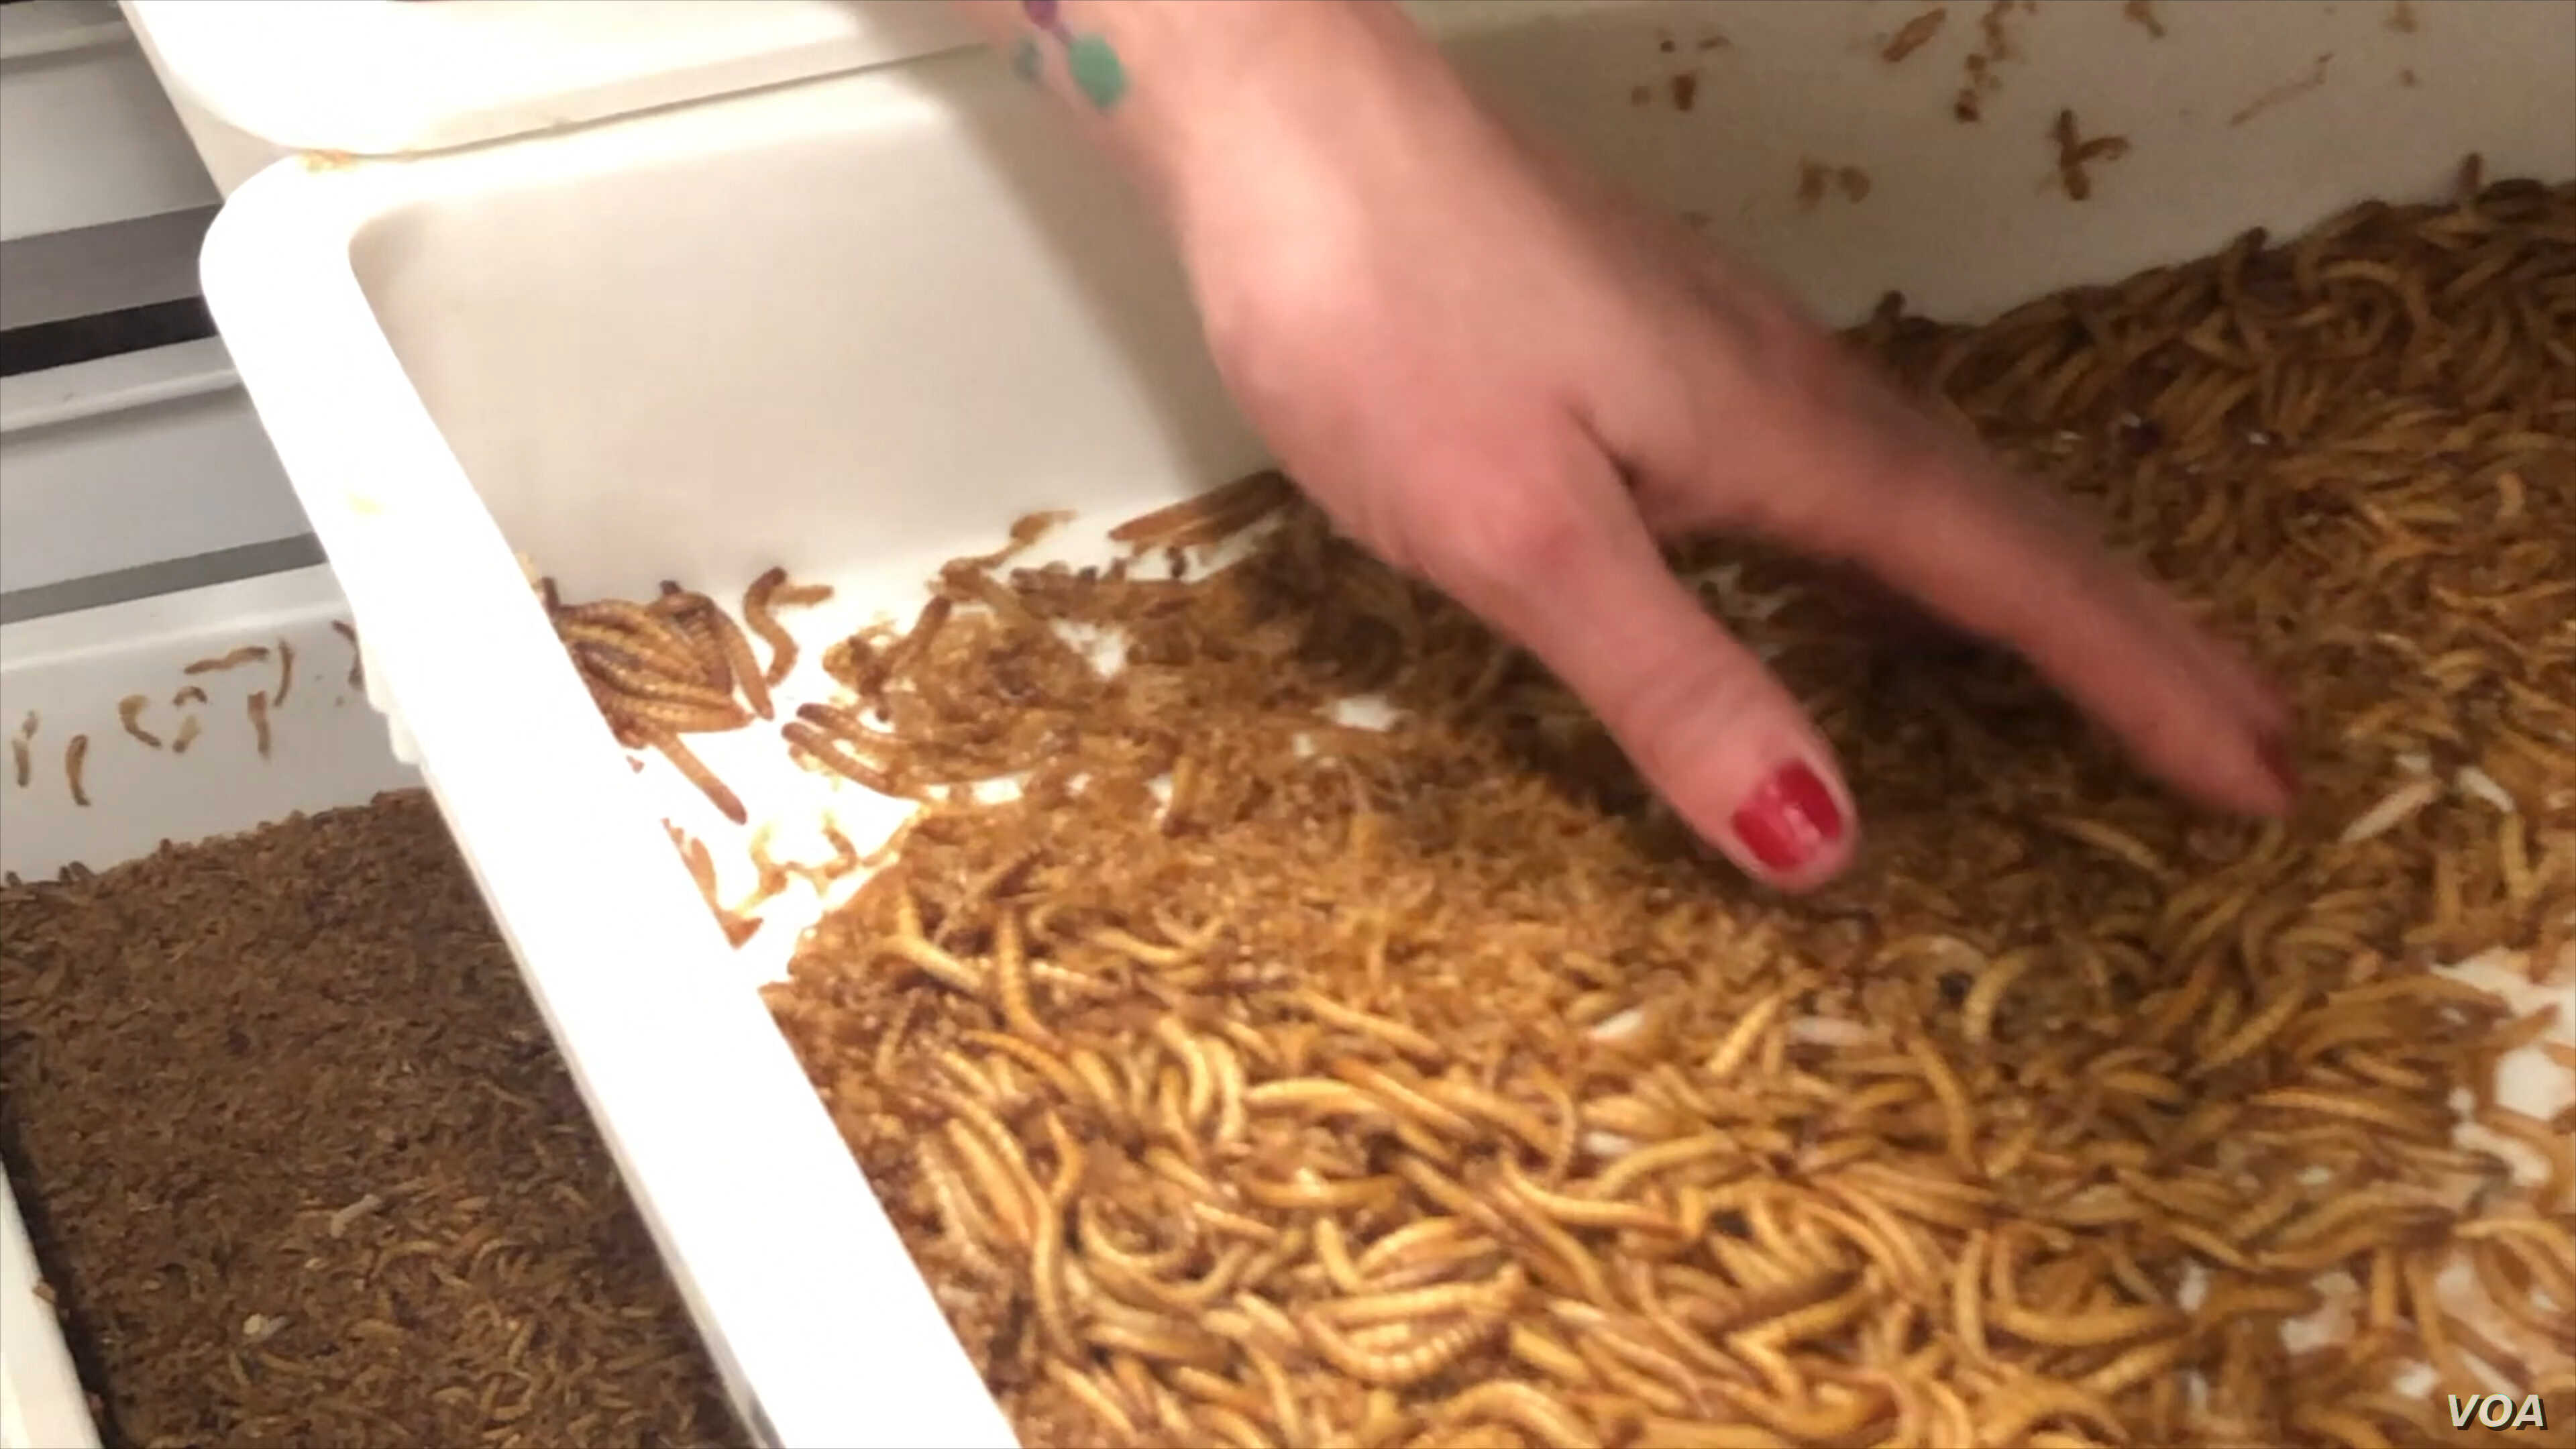 Wendy Lu McGill raises mealworms and crickets to sell to restaurants and food manufacturers.